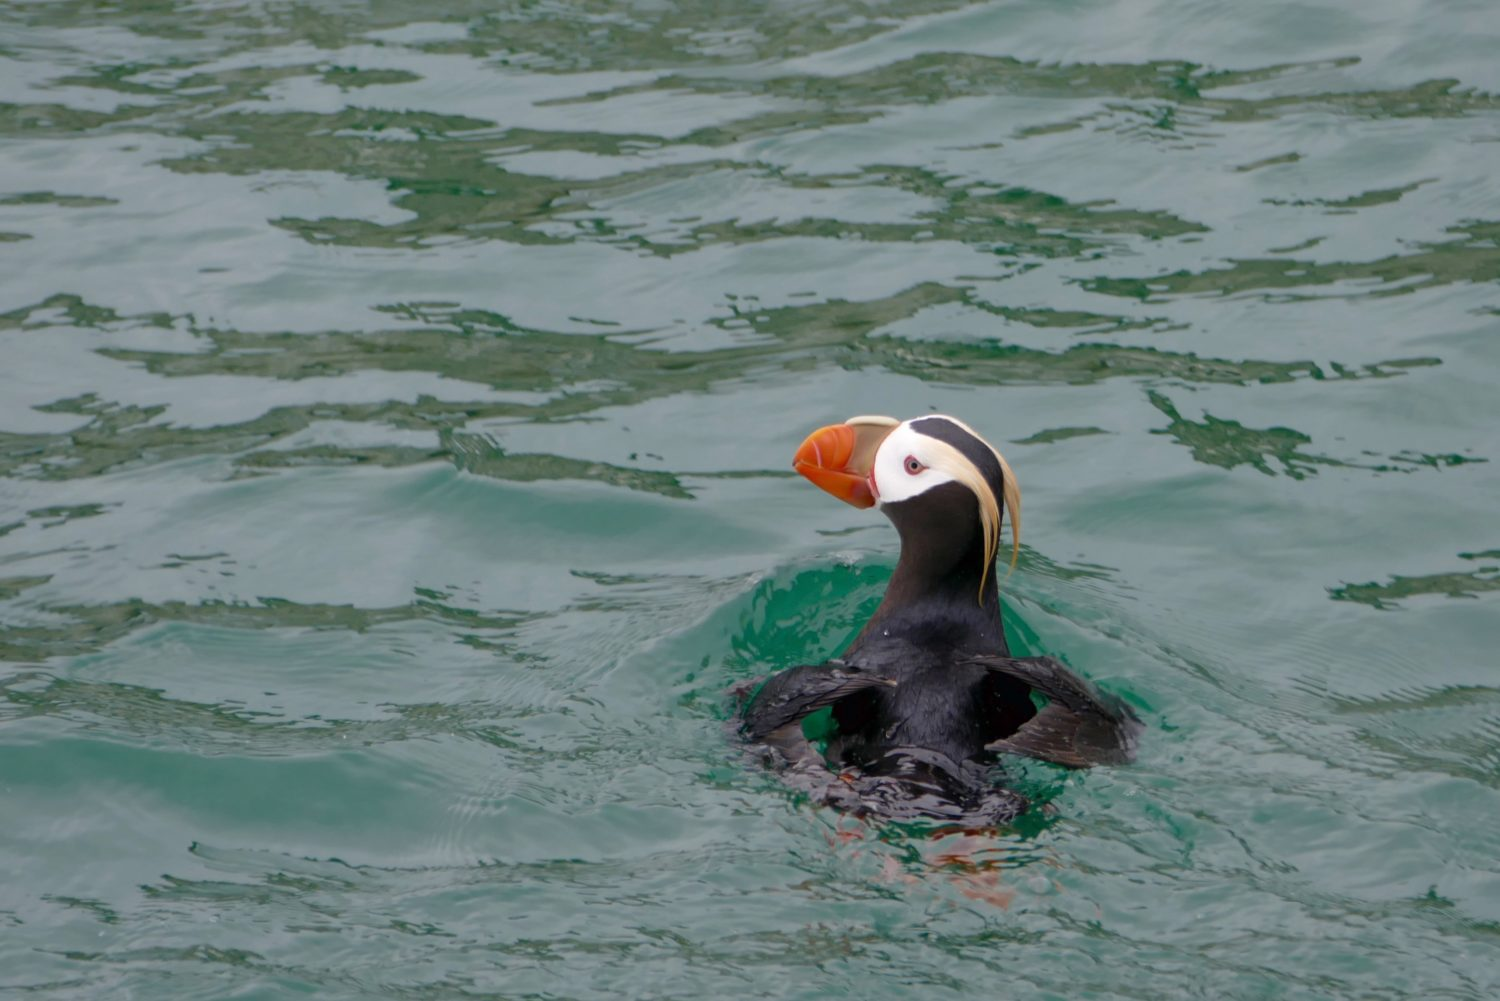 Tufted puffin. All photos copyright Doug Spencer.